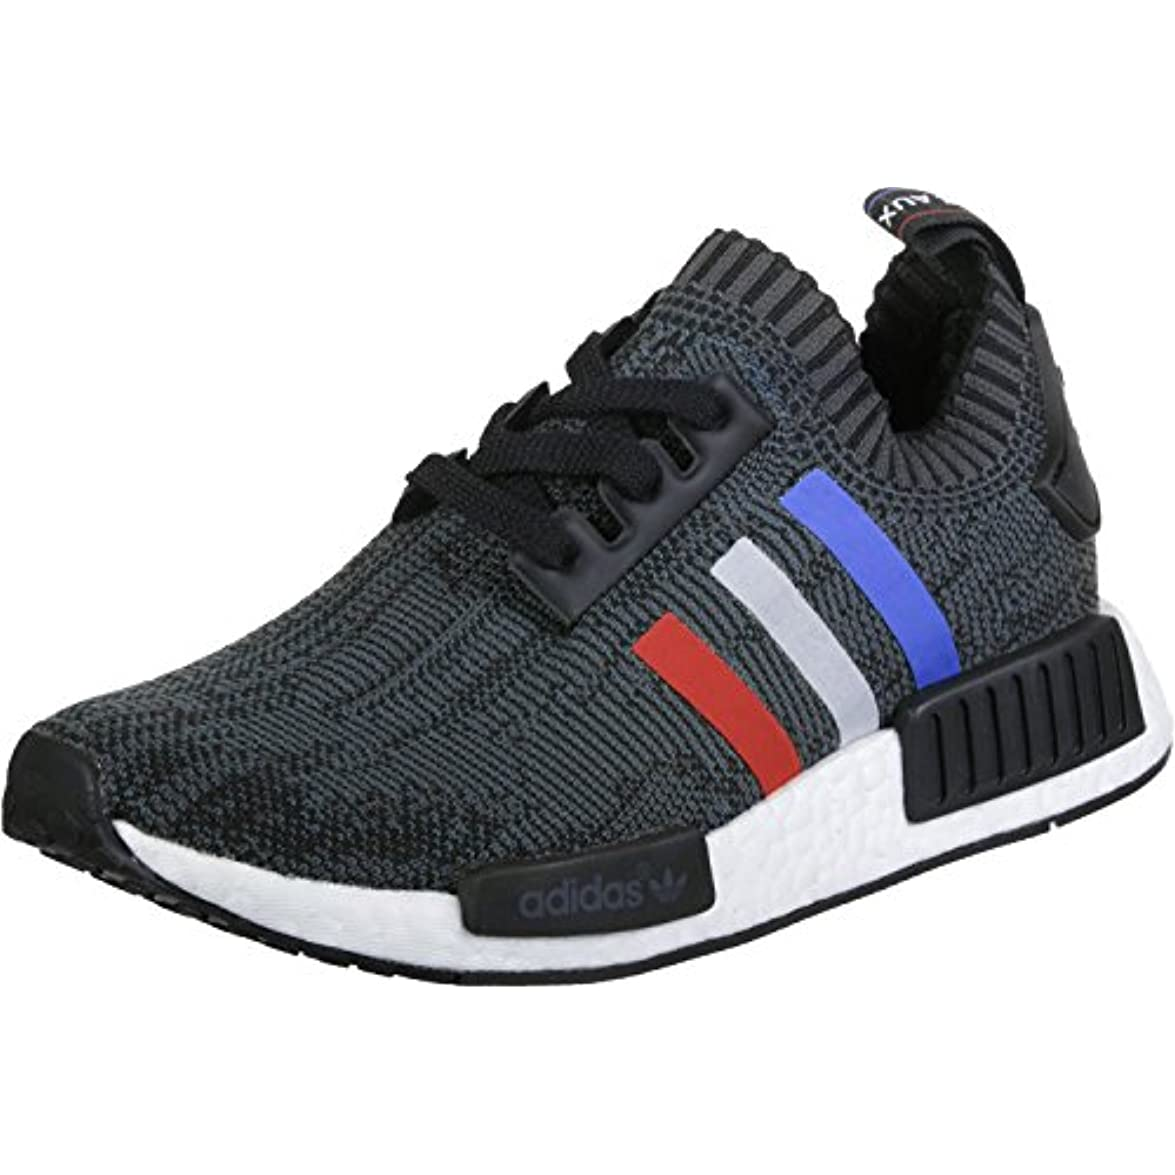 Adidas Originals Nmd R1 Pk Core Black core Red ftwr White 6